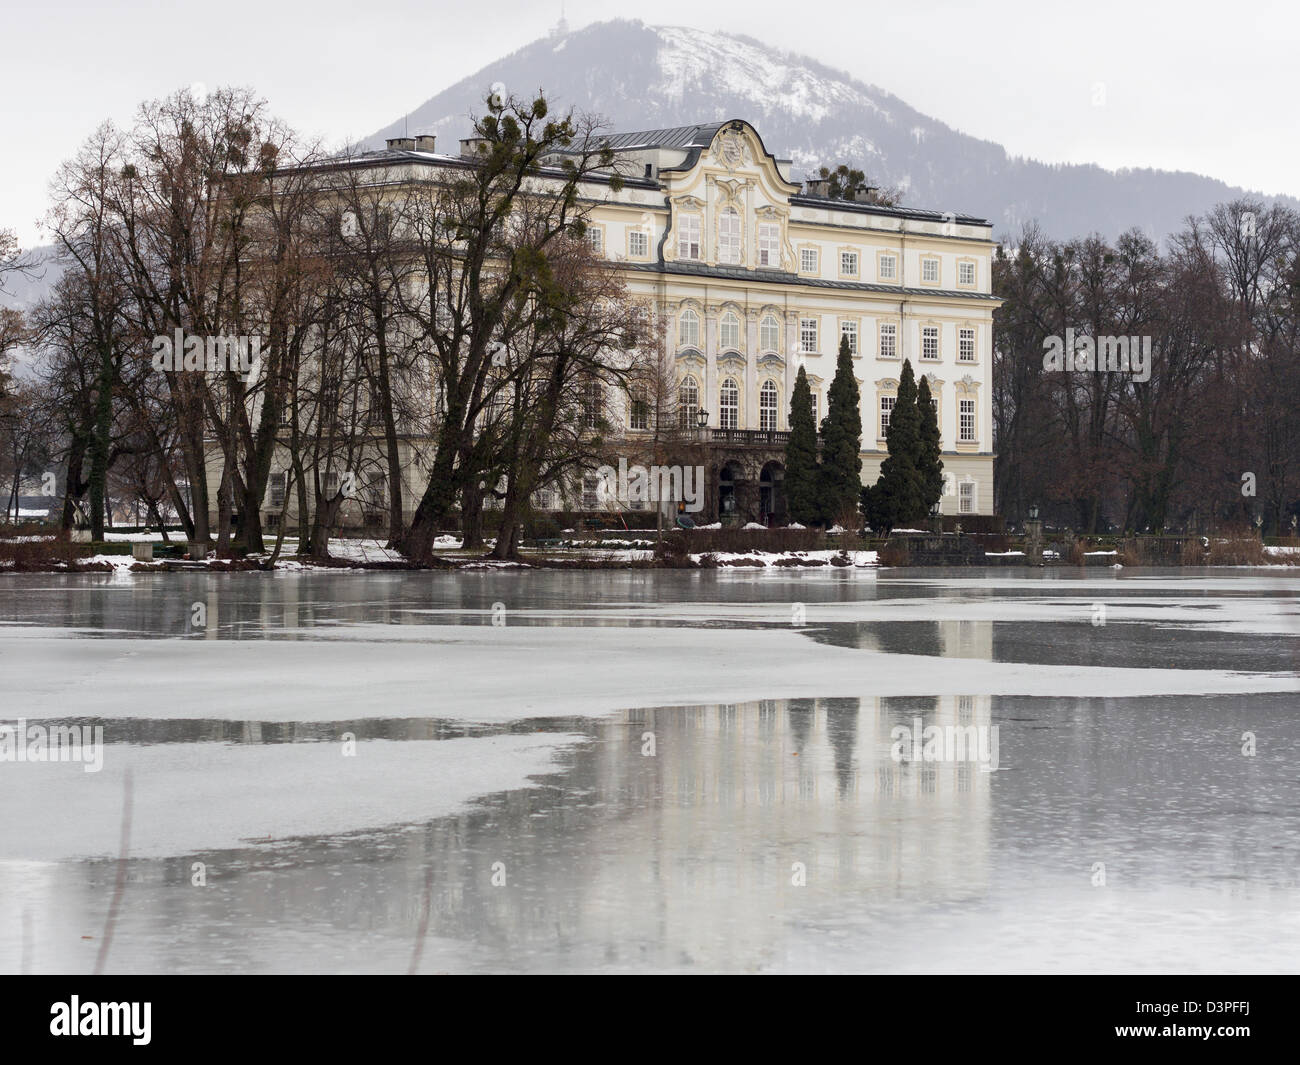 Von Trapp Mansion: Schloss Leopoldskron. The house used for the Von Trapp family in the Sound of Music movie. - Stock Image